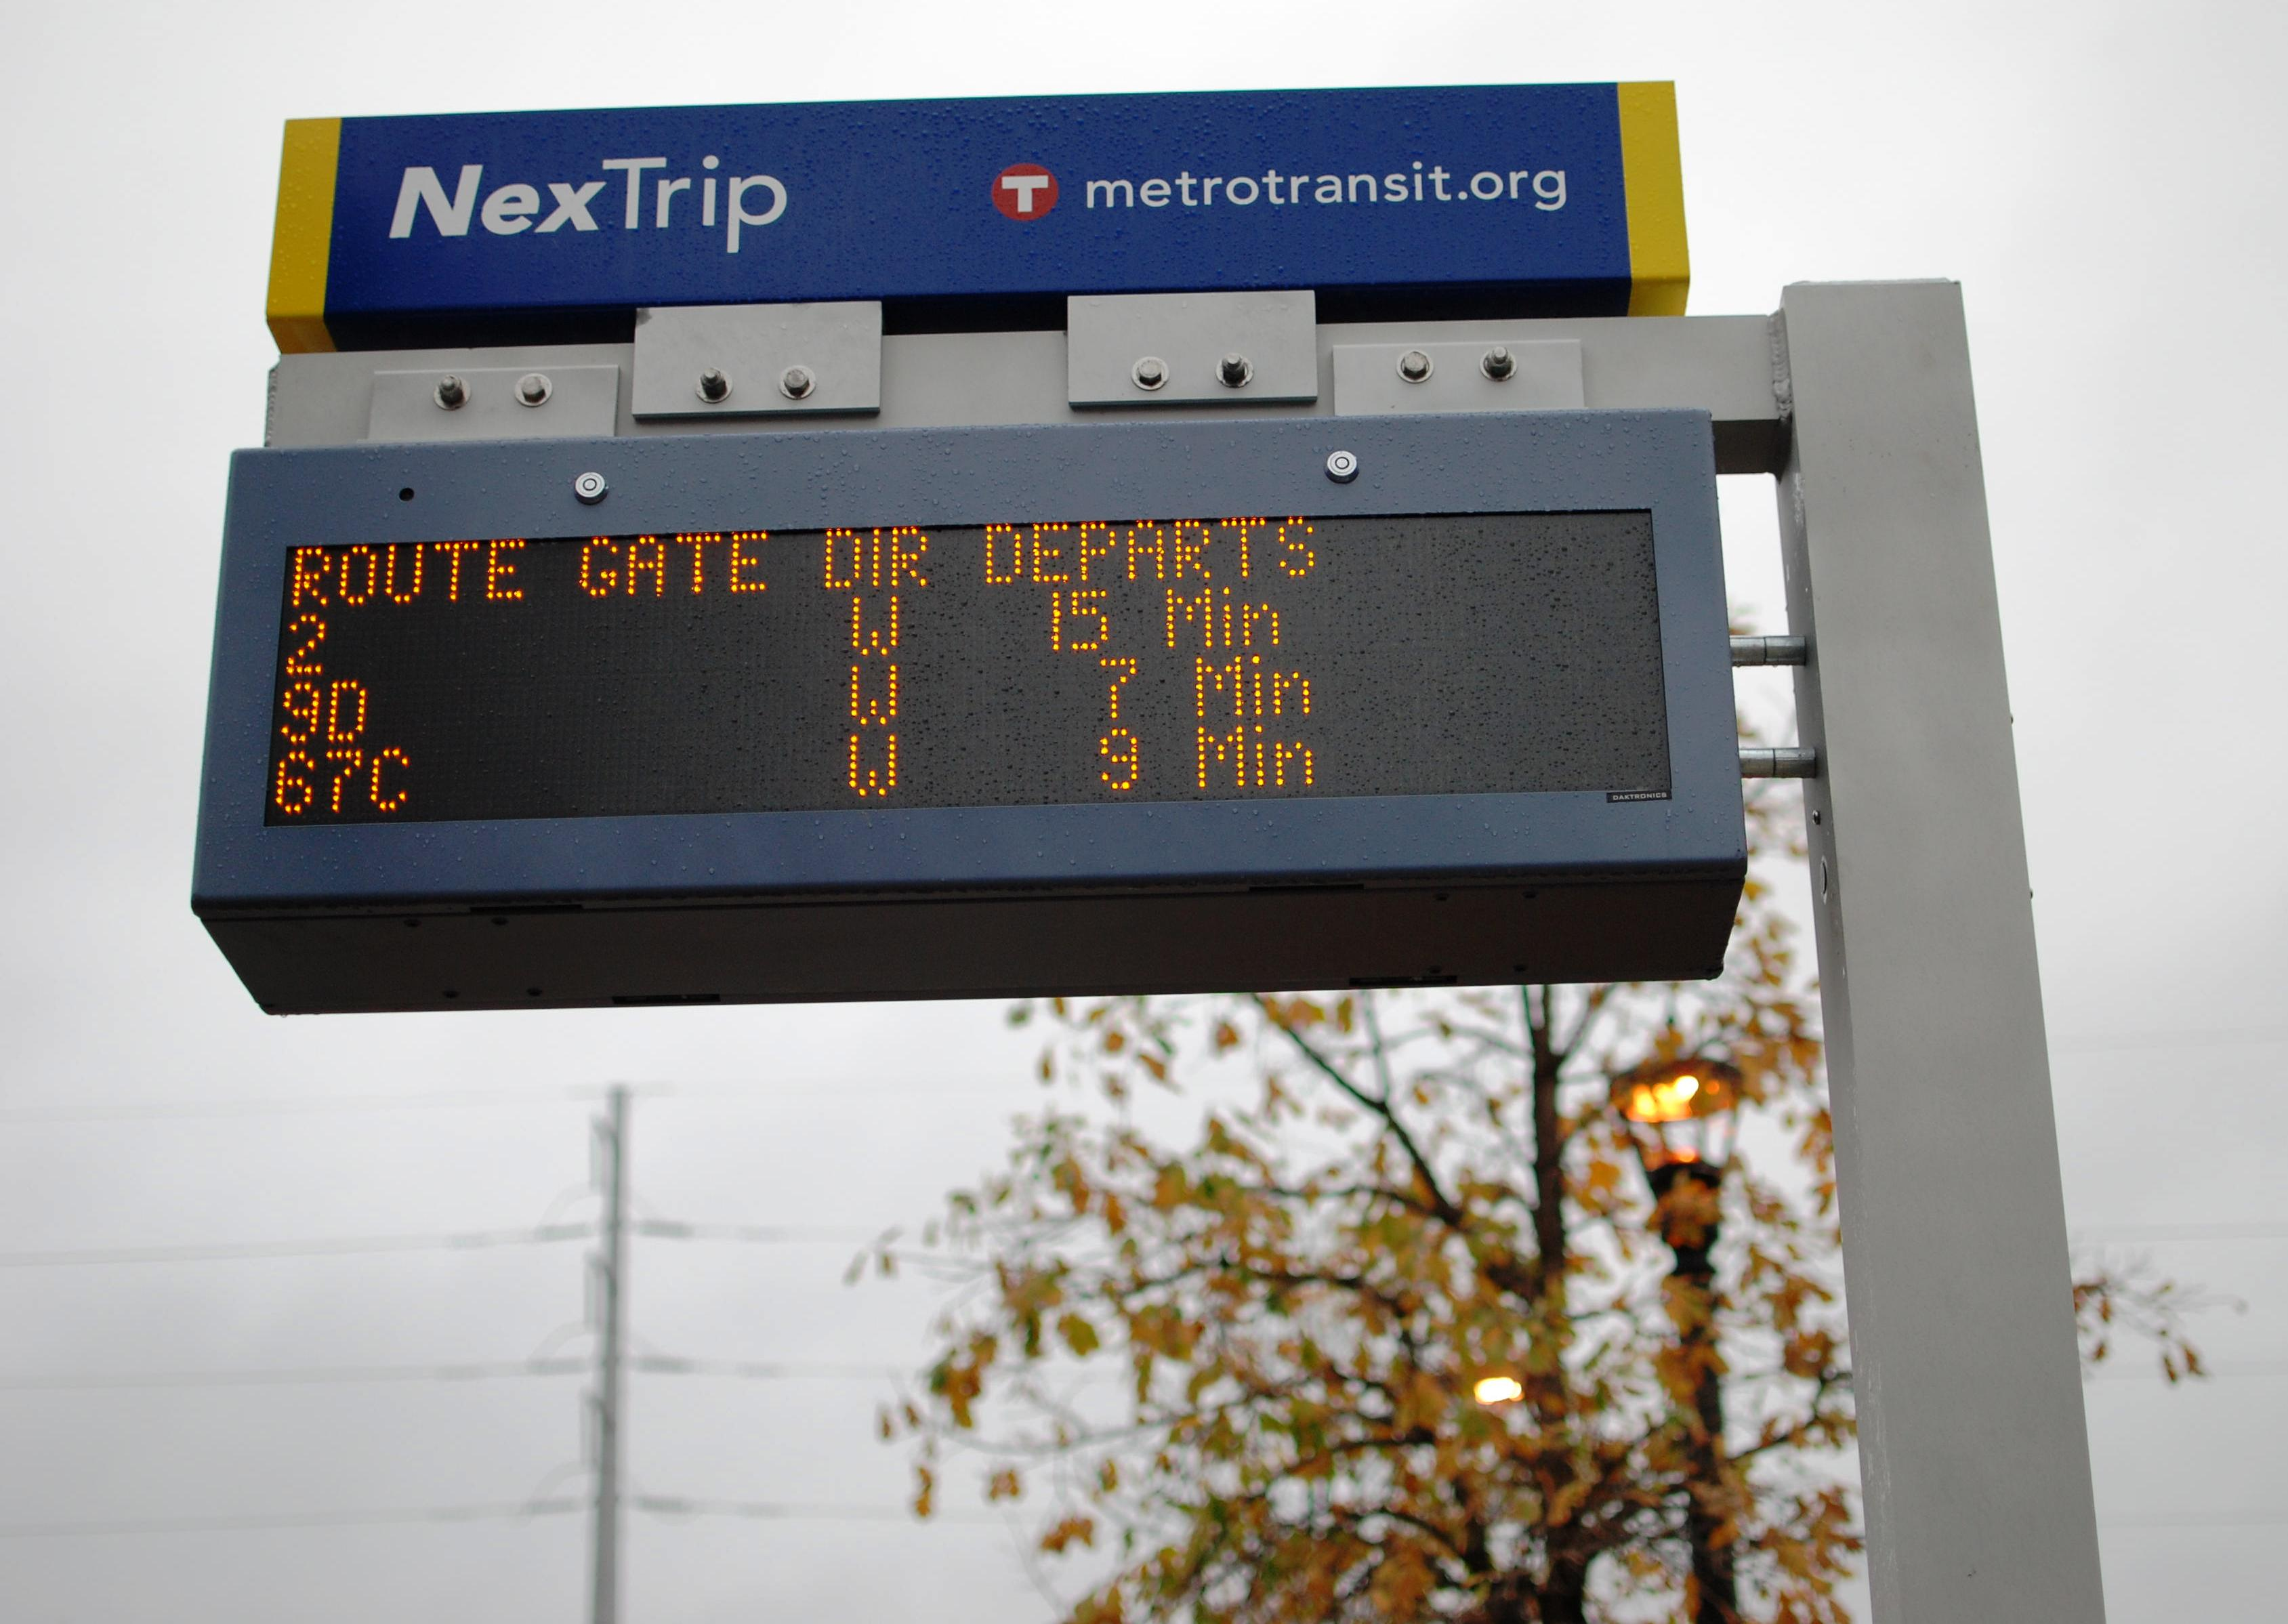 A NexTrip sign provides expected real-time departures for upcoming bus trips. The sign posts also have a button for audio information.